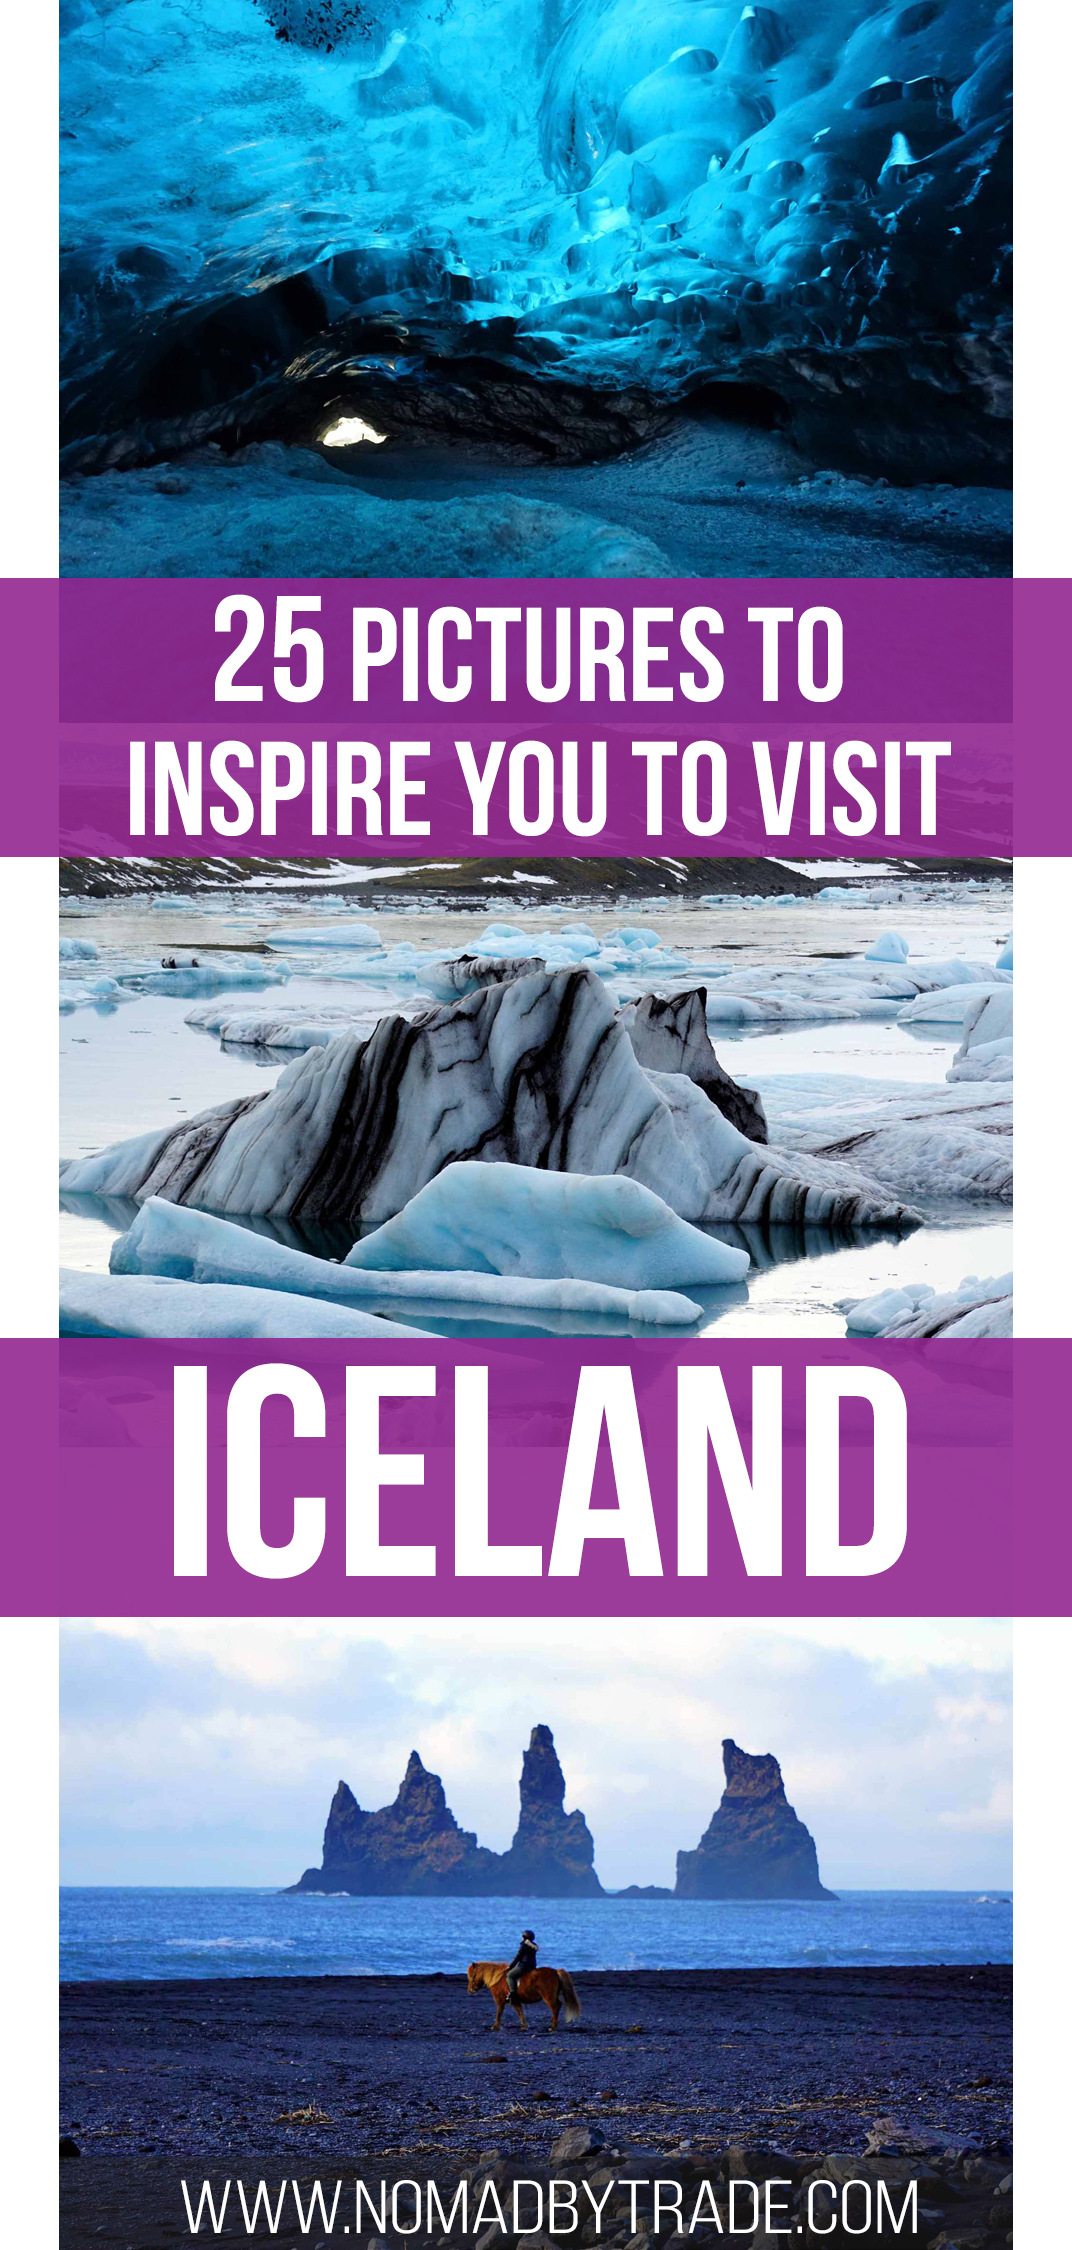 25 photos to put Iceland on your winter bucket list. Includes the Golden Circle, Blue Lagoon, Jokulsarlon, an ice cave, and the Northern Lights